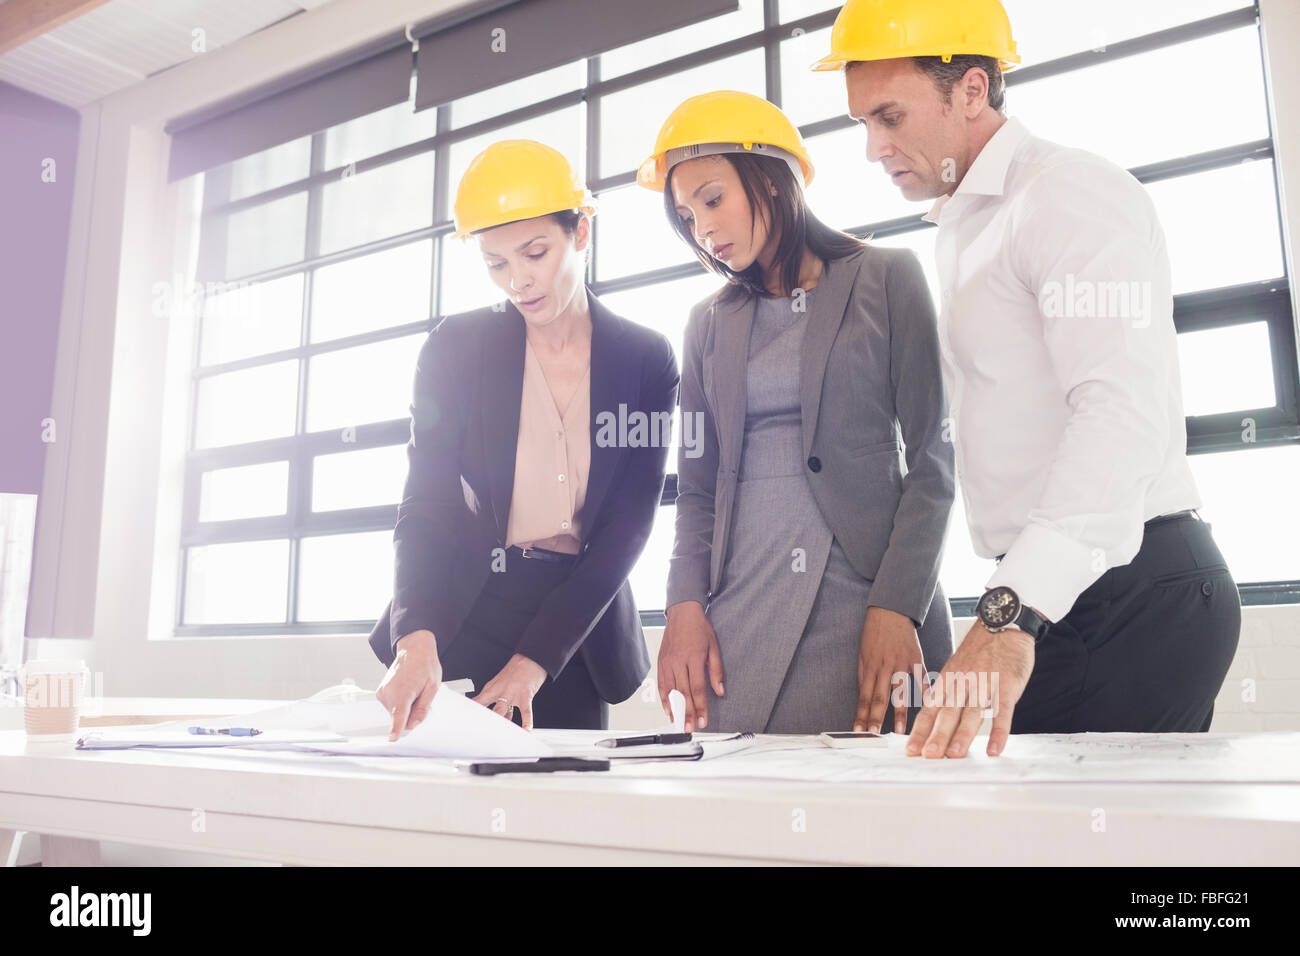 Business people wearing safety helmets - Stock Image